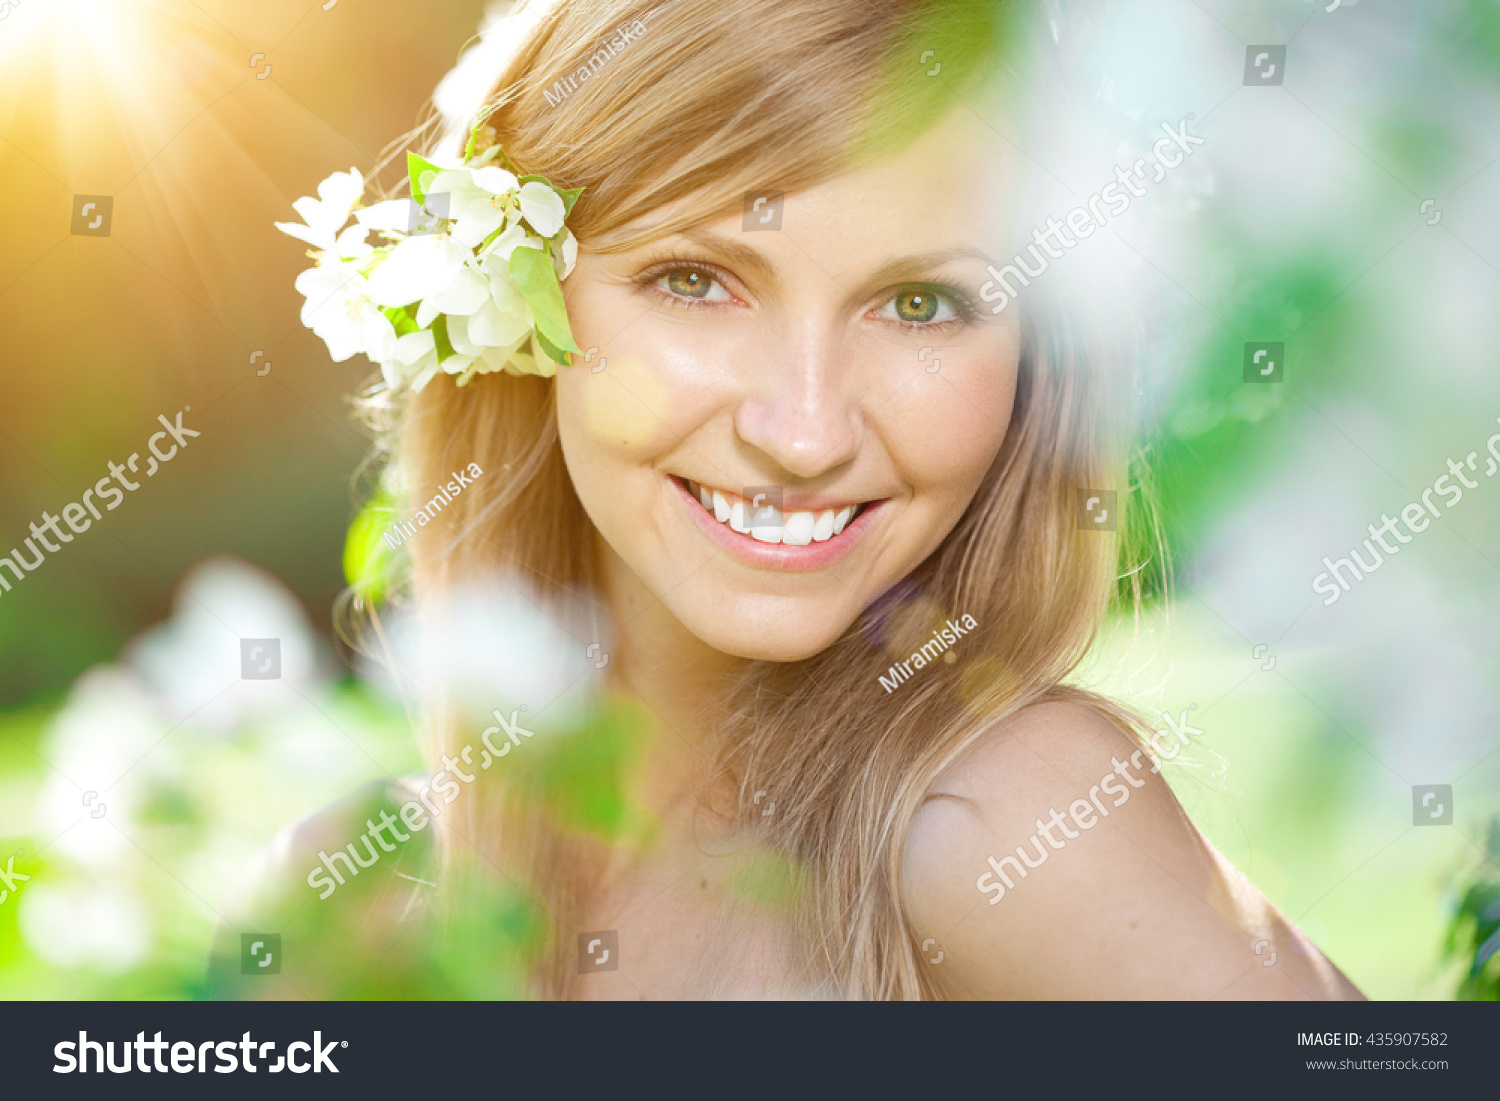 Young woman beautiful smile healthy teeth stock photo 435907582 young woman with a beautiful smile with healthy teeth with flowers face of a beautiful dhlflorist Gallery